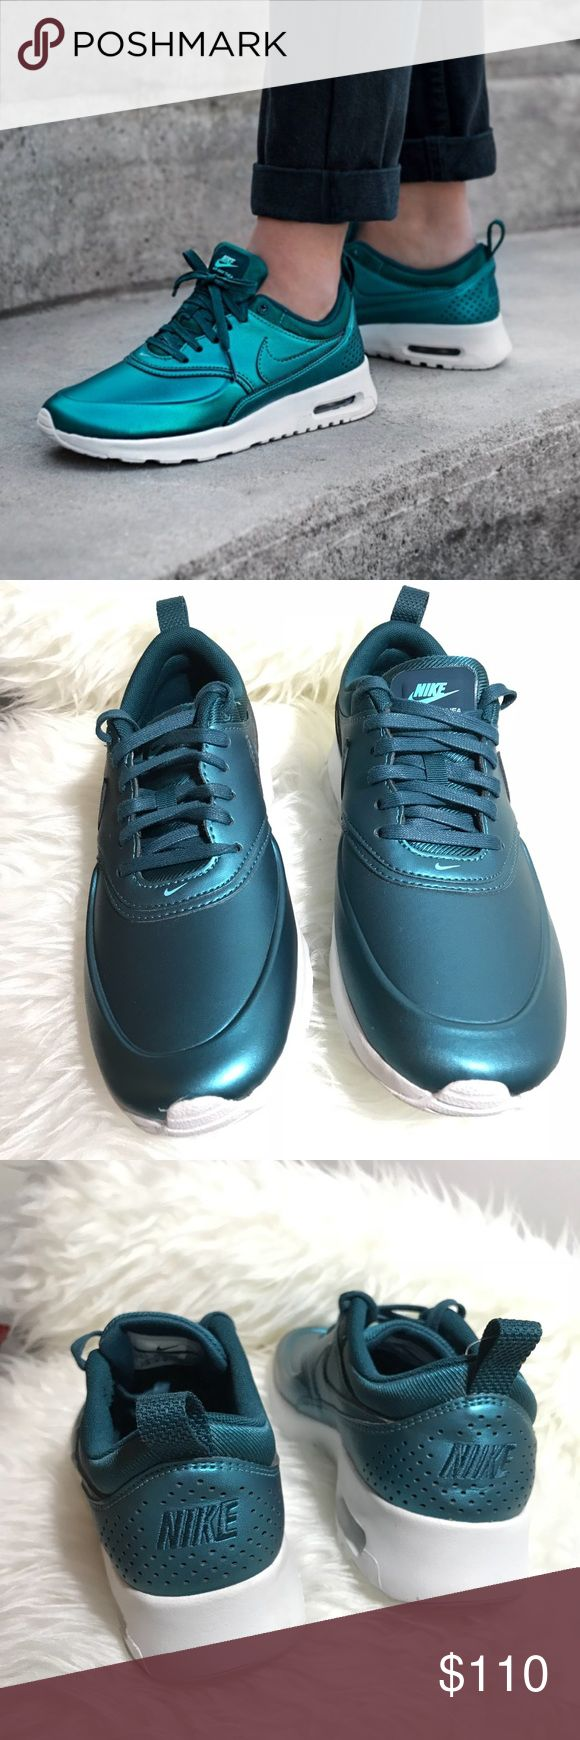 nike • air max thea in metallic dark sea green condition:  new without box, but has plastic tag. some light wear on sole from try on.  Perfect otherwise. retail: $130  * Nike Air Max Thea Special Edition sneaker in Metallic Dark Sea/ Summit White  Size 8.5 Metallic leather upper Air Max sole   NO TRADES  trusted seller for years • ships quickly great feedback • REASONABLE offers welcome Nike Shoes Sneakers